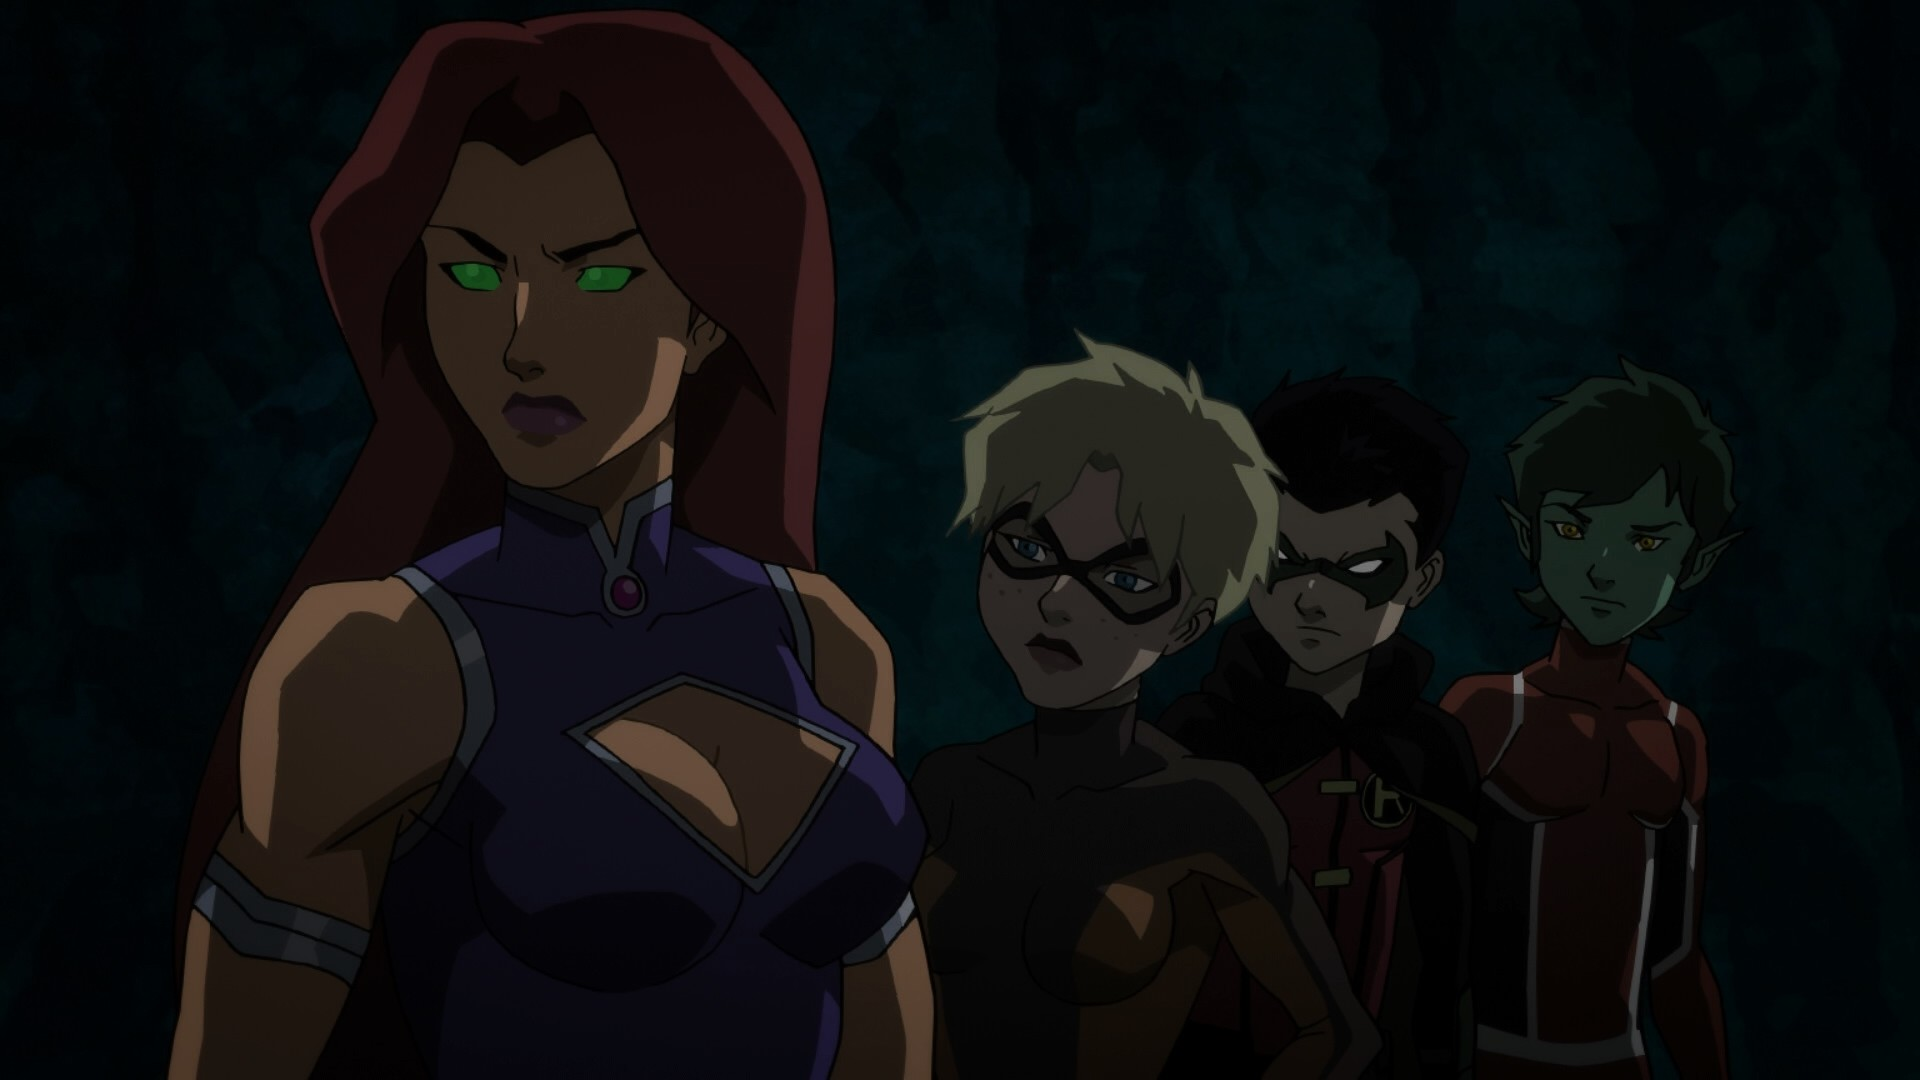 Teen Titans: The Judas Contract is presented in the 1.78:1 aspect ratio  using an AVC MPEG-4 codec. The animation style here falls in line with  prior …